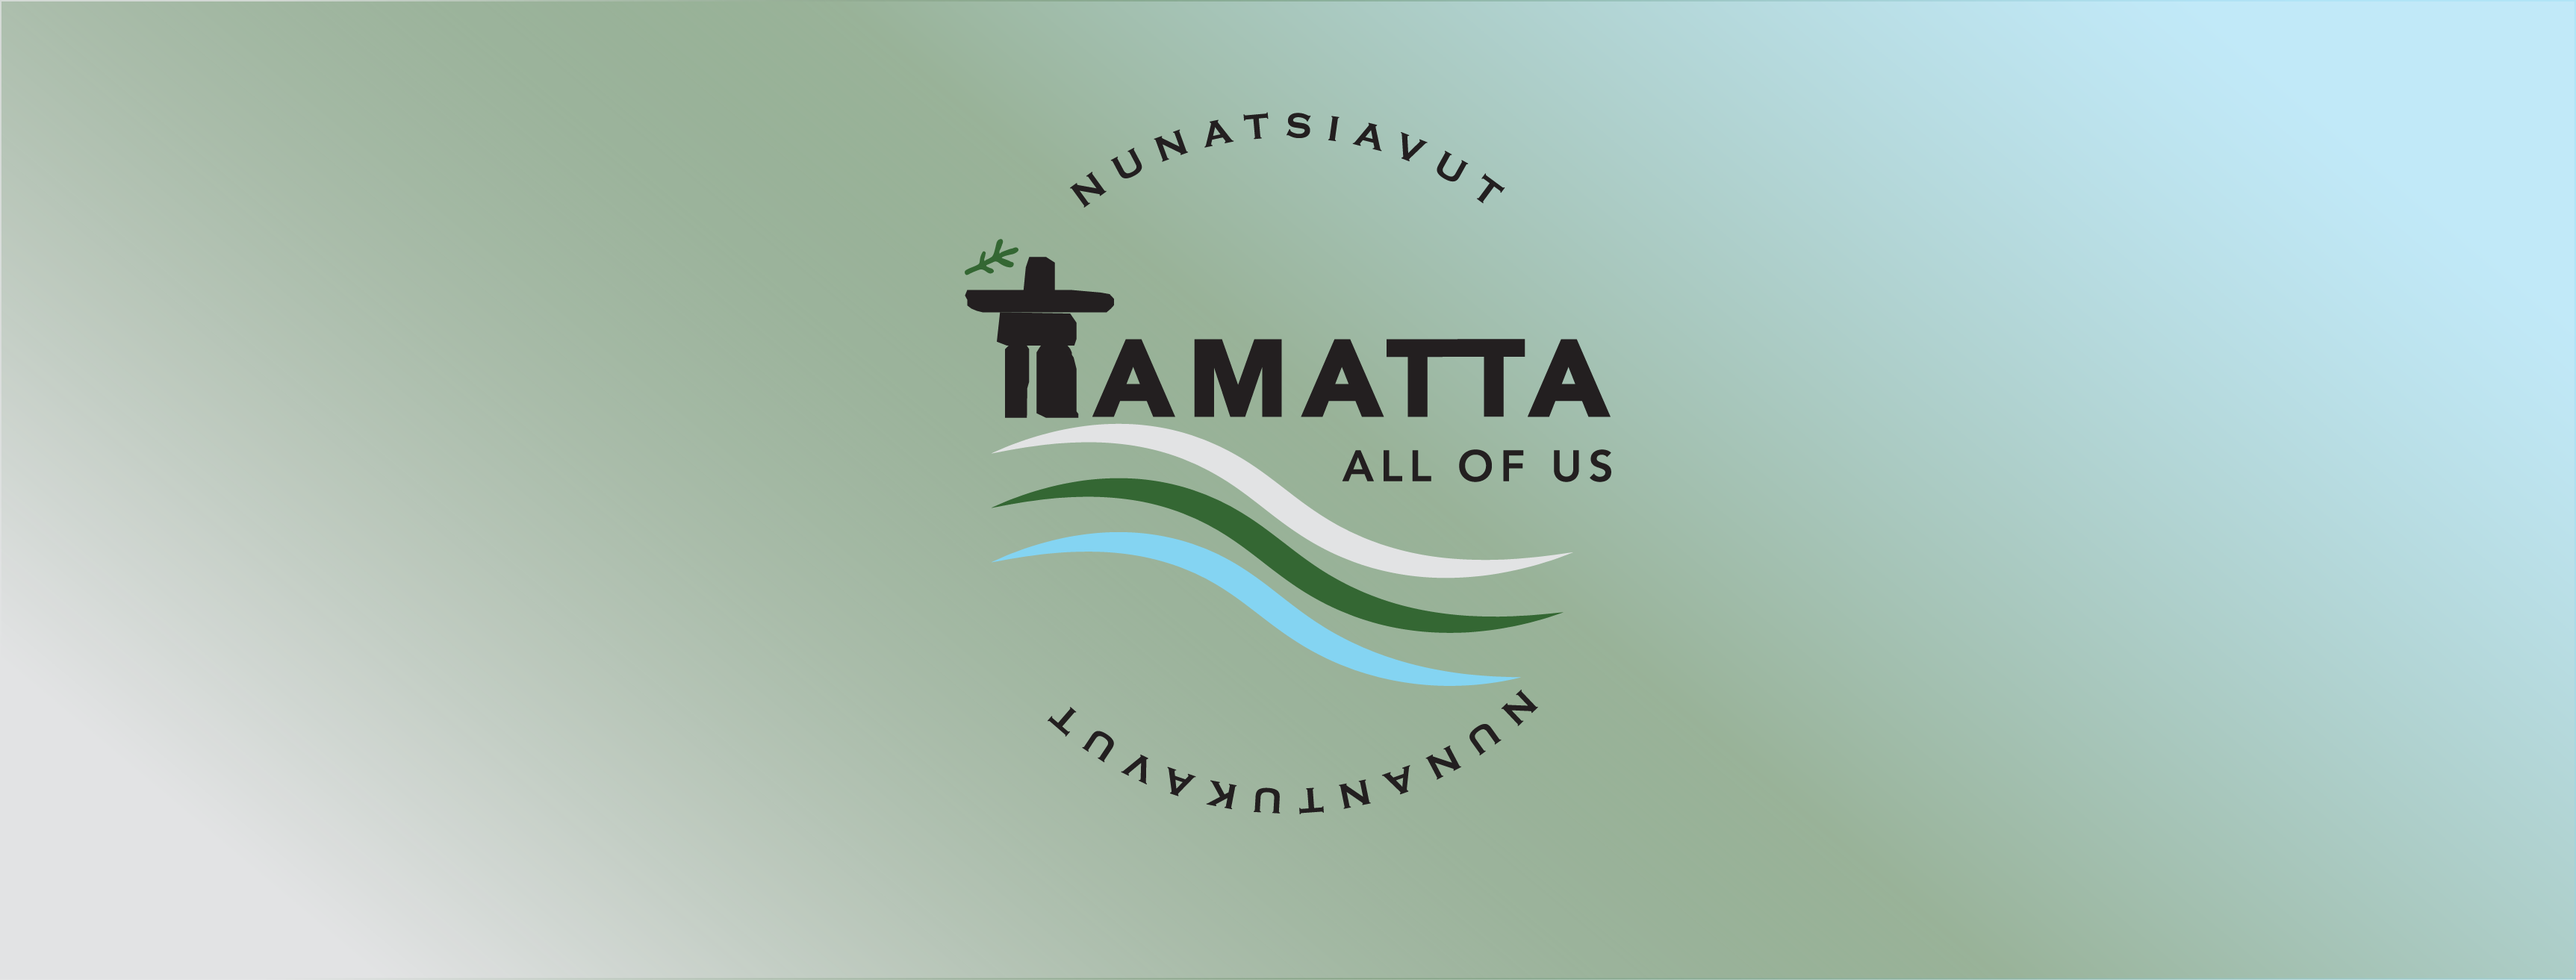 Tamatta Mining and Contracting Ltd